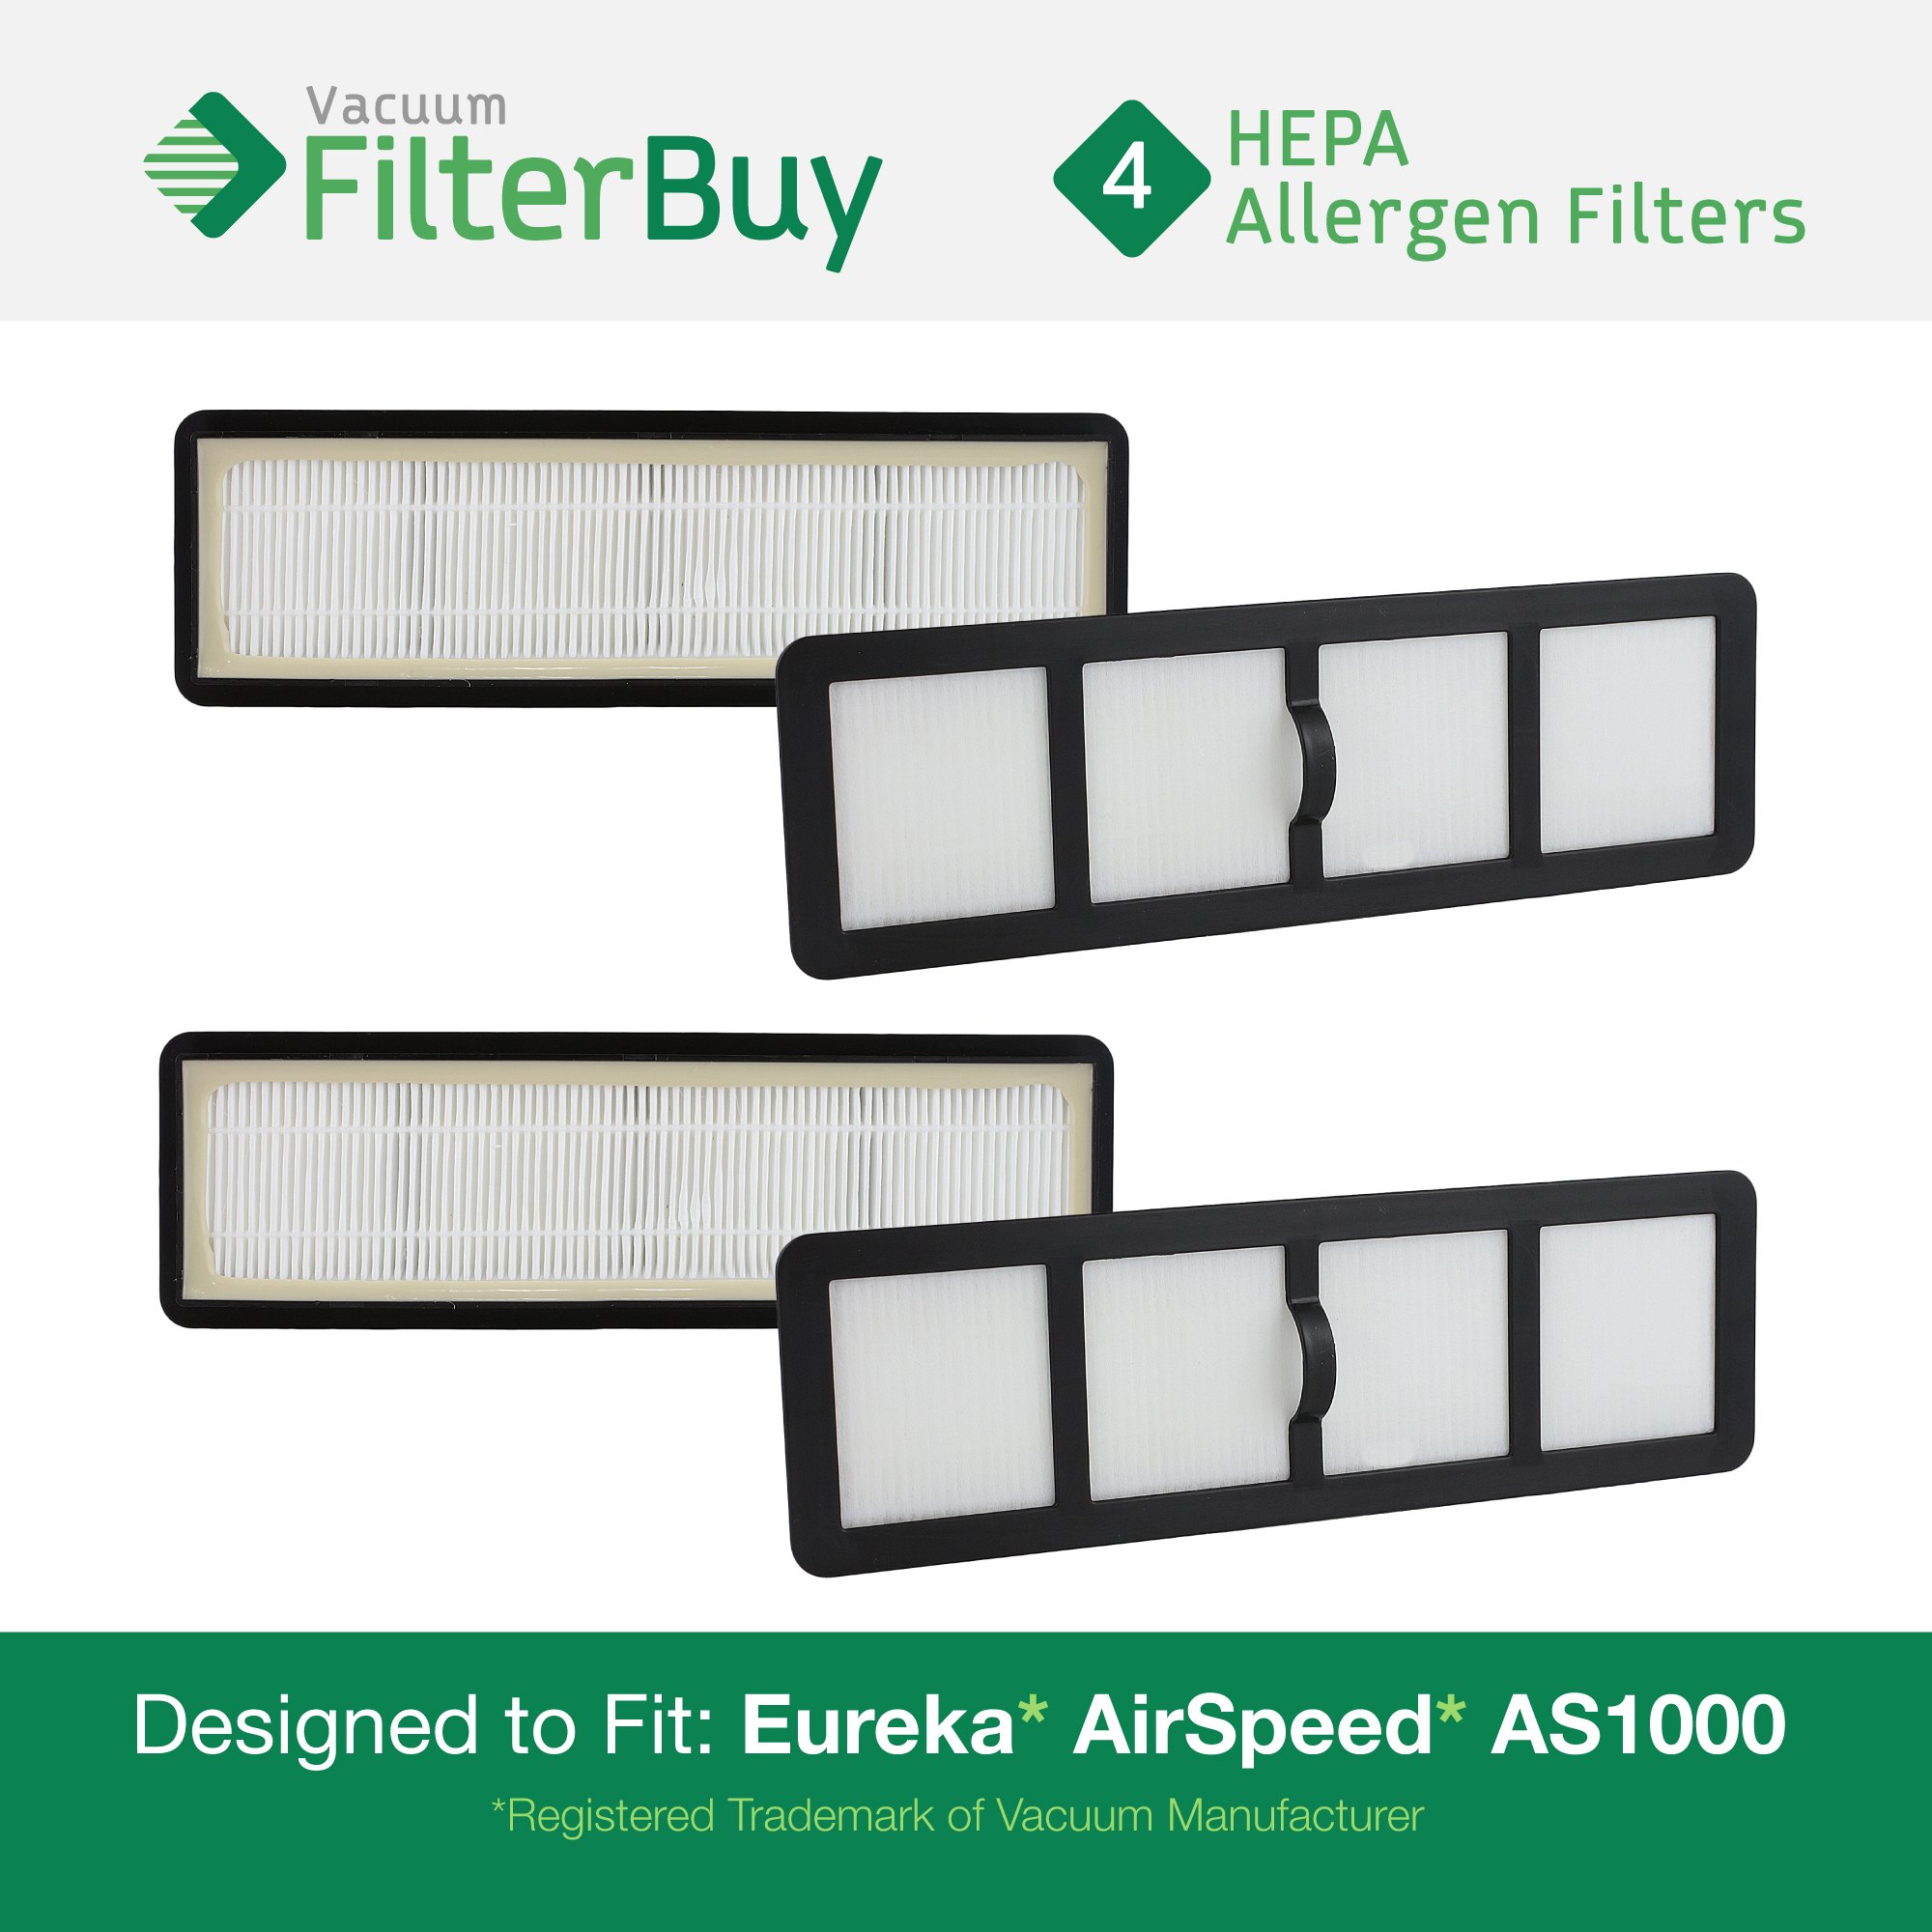 4 - Eureka Airspeed EF6 (EF-6) HEPA Replacement Filters, Part # 83091-1. Designed by FilterBuy to fit Eureka Airspeed AS1000 Upright Vacuums